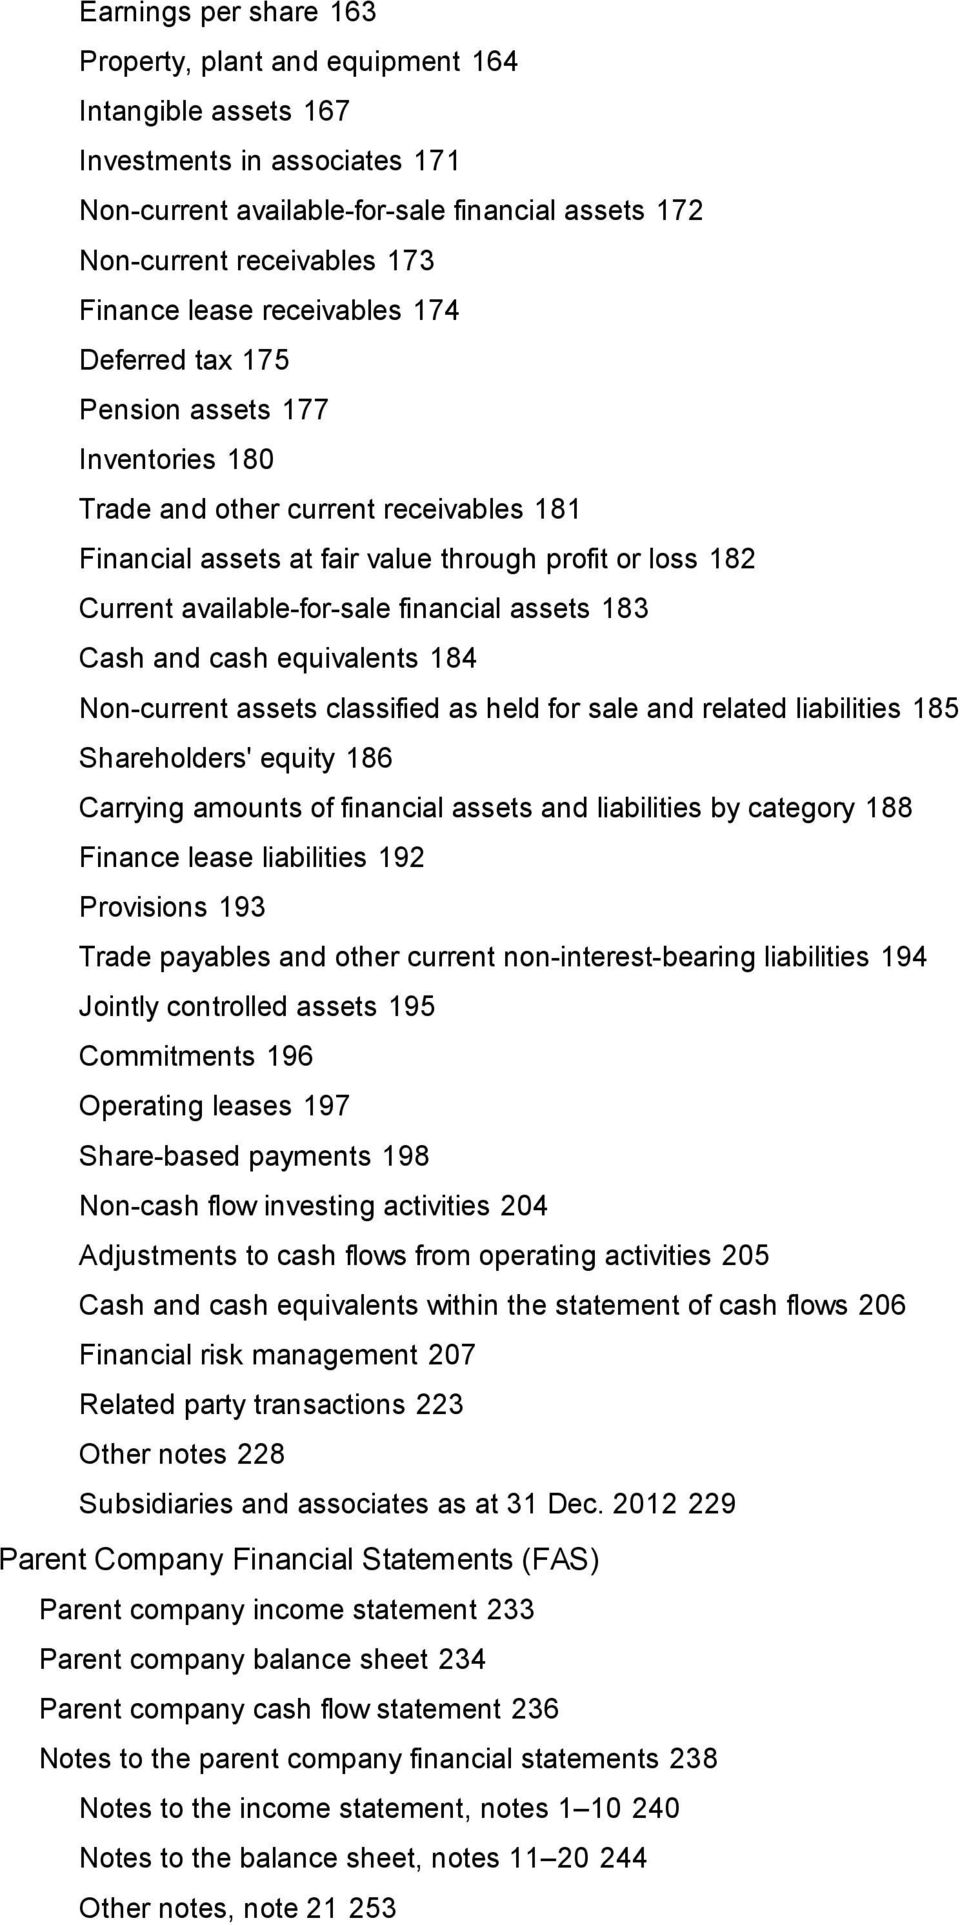 financial assets 183 Cash and cash equivalents 184 Non-current assets classified as held for sale and related liabilities 185 Shareholders' equity 186 Carrying amounts of financial assets and